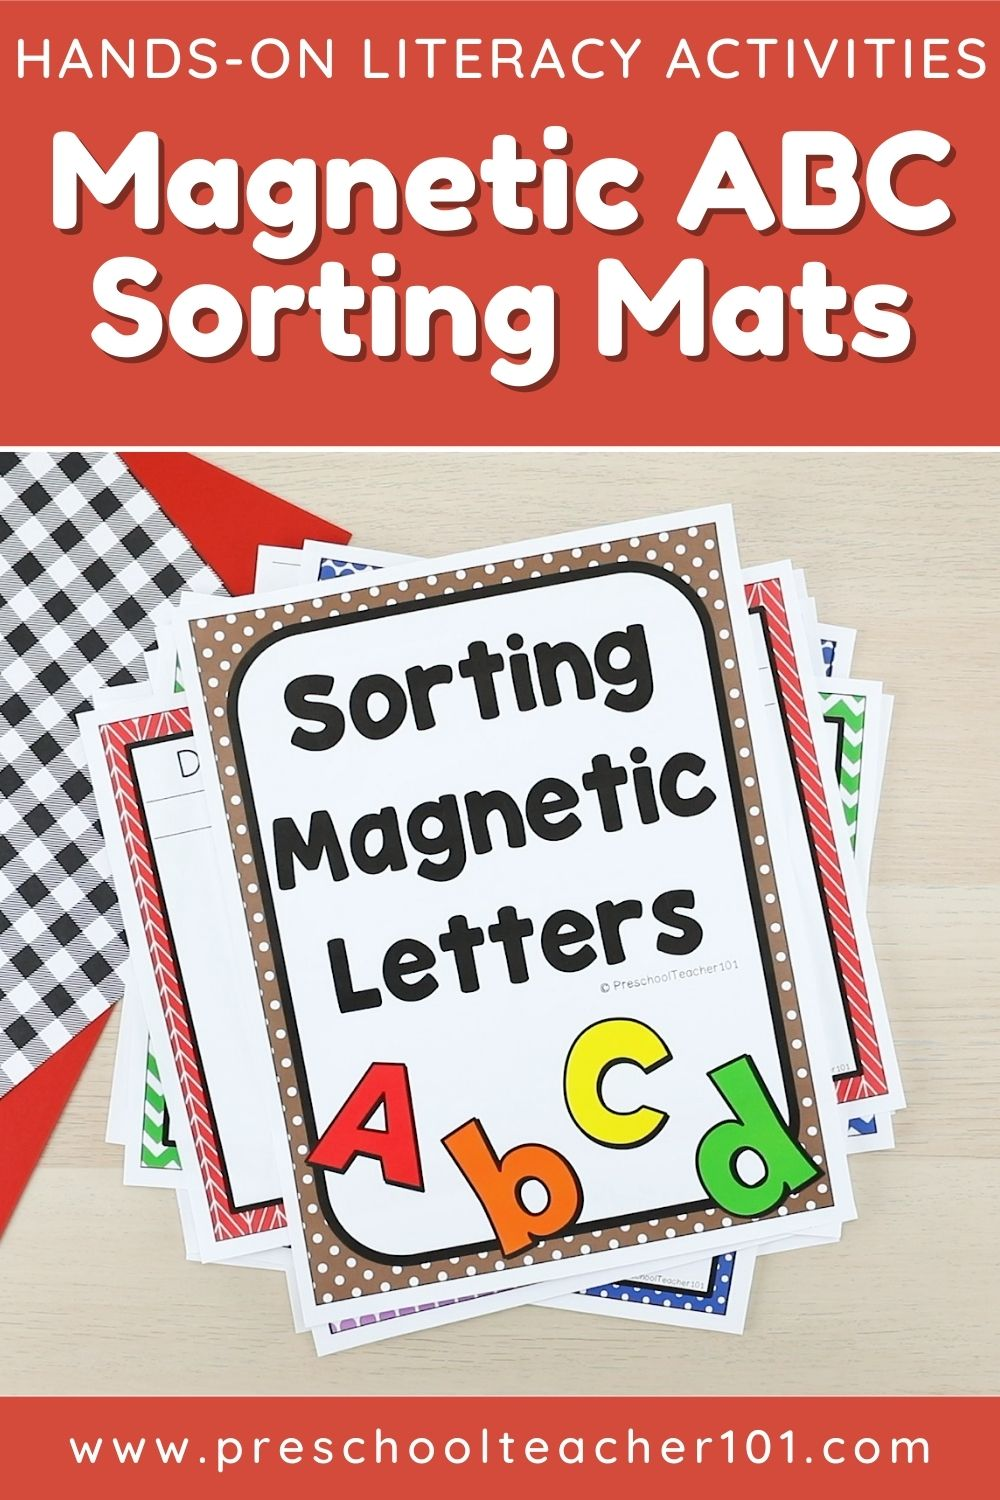 Playful Learning Activities - ABC Magnetic Sorting